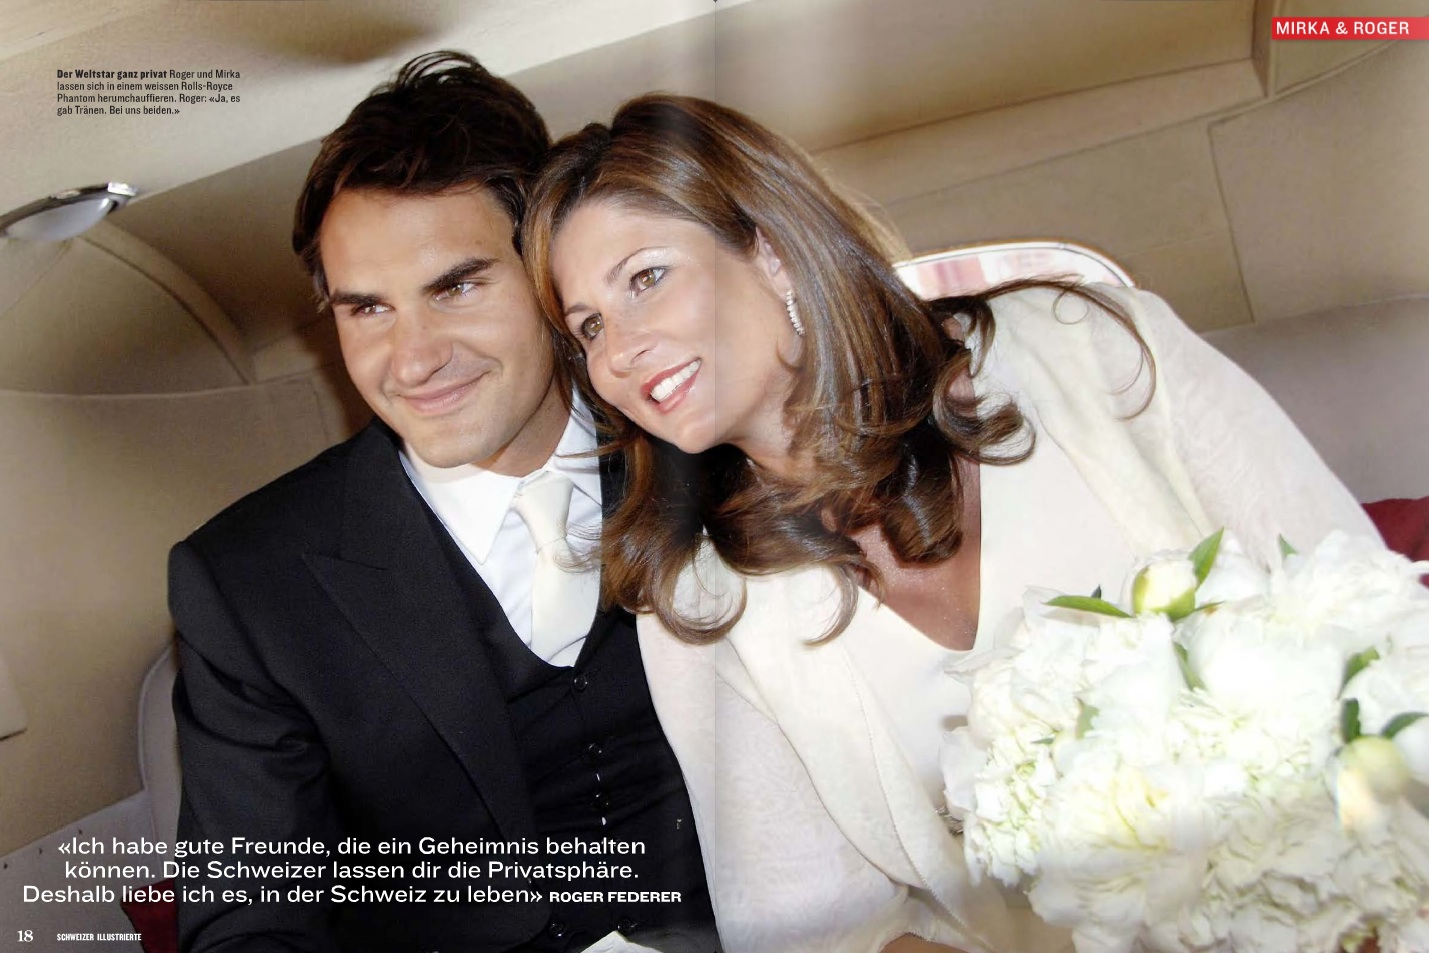 Roger Federer and Mirka Wedding Pictures News for FIFA WORLD